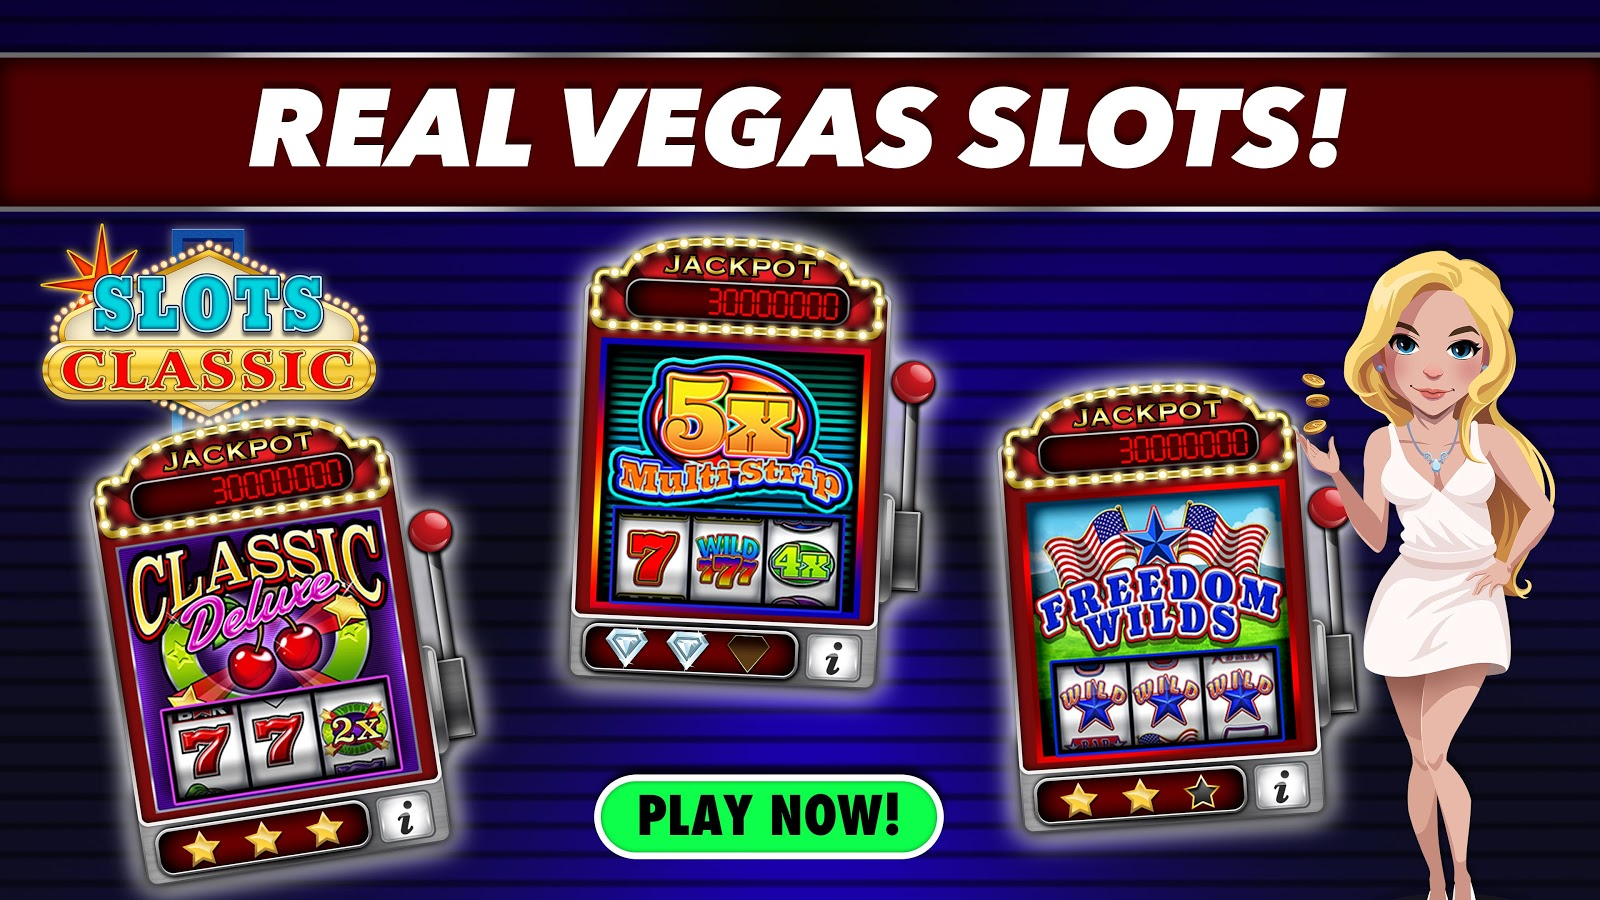 Heroes of Spin Slot Machine - Play for Free or Real Money